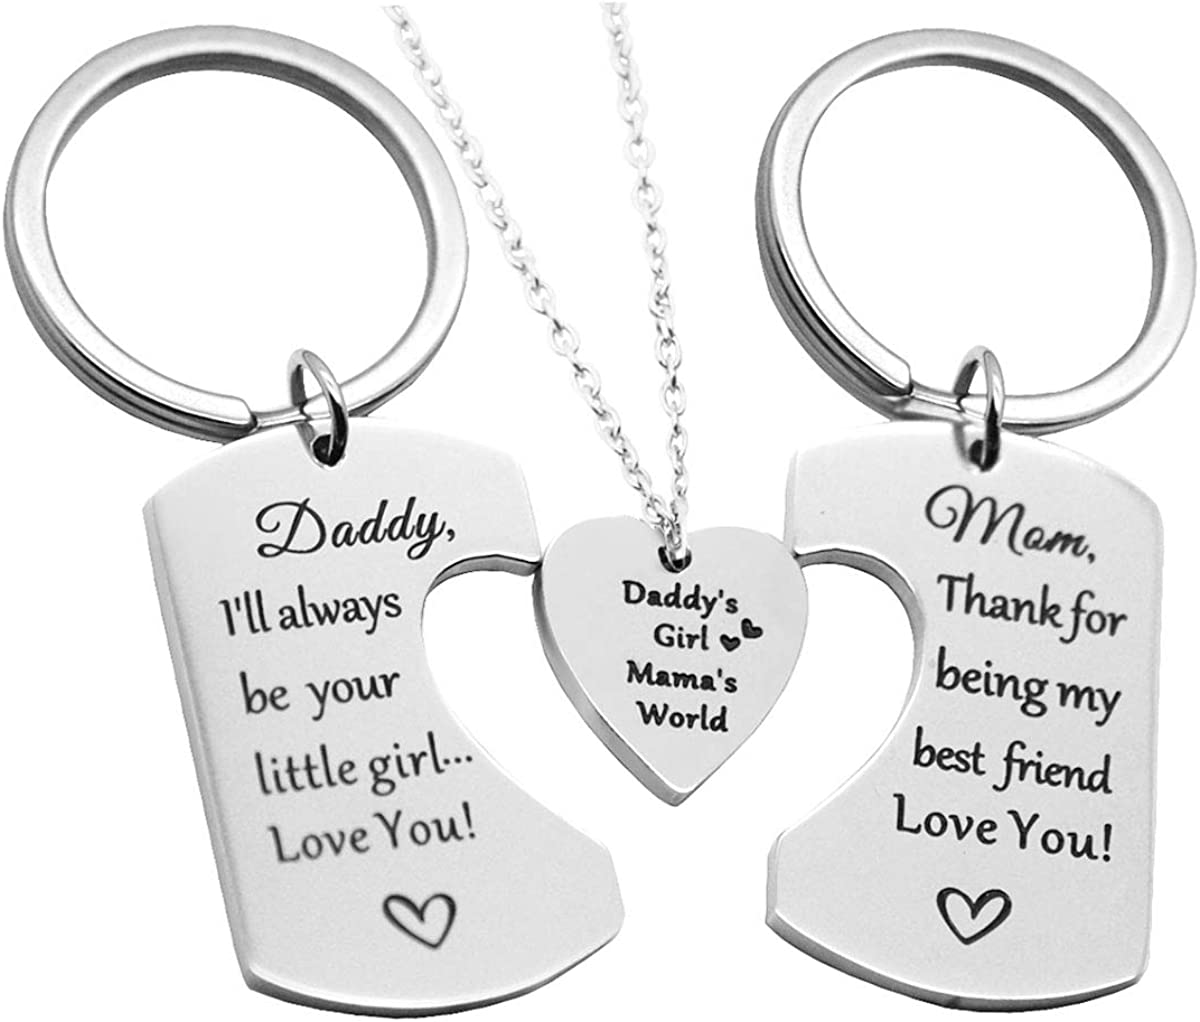 Gold Metal Keychain Key Ring Pendant with Lettering Best Gift for Mom for Expressing Love and Thanksgiving- Stainless Steel Mom i Love You